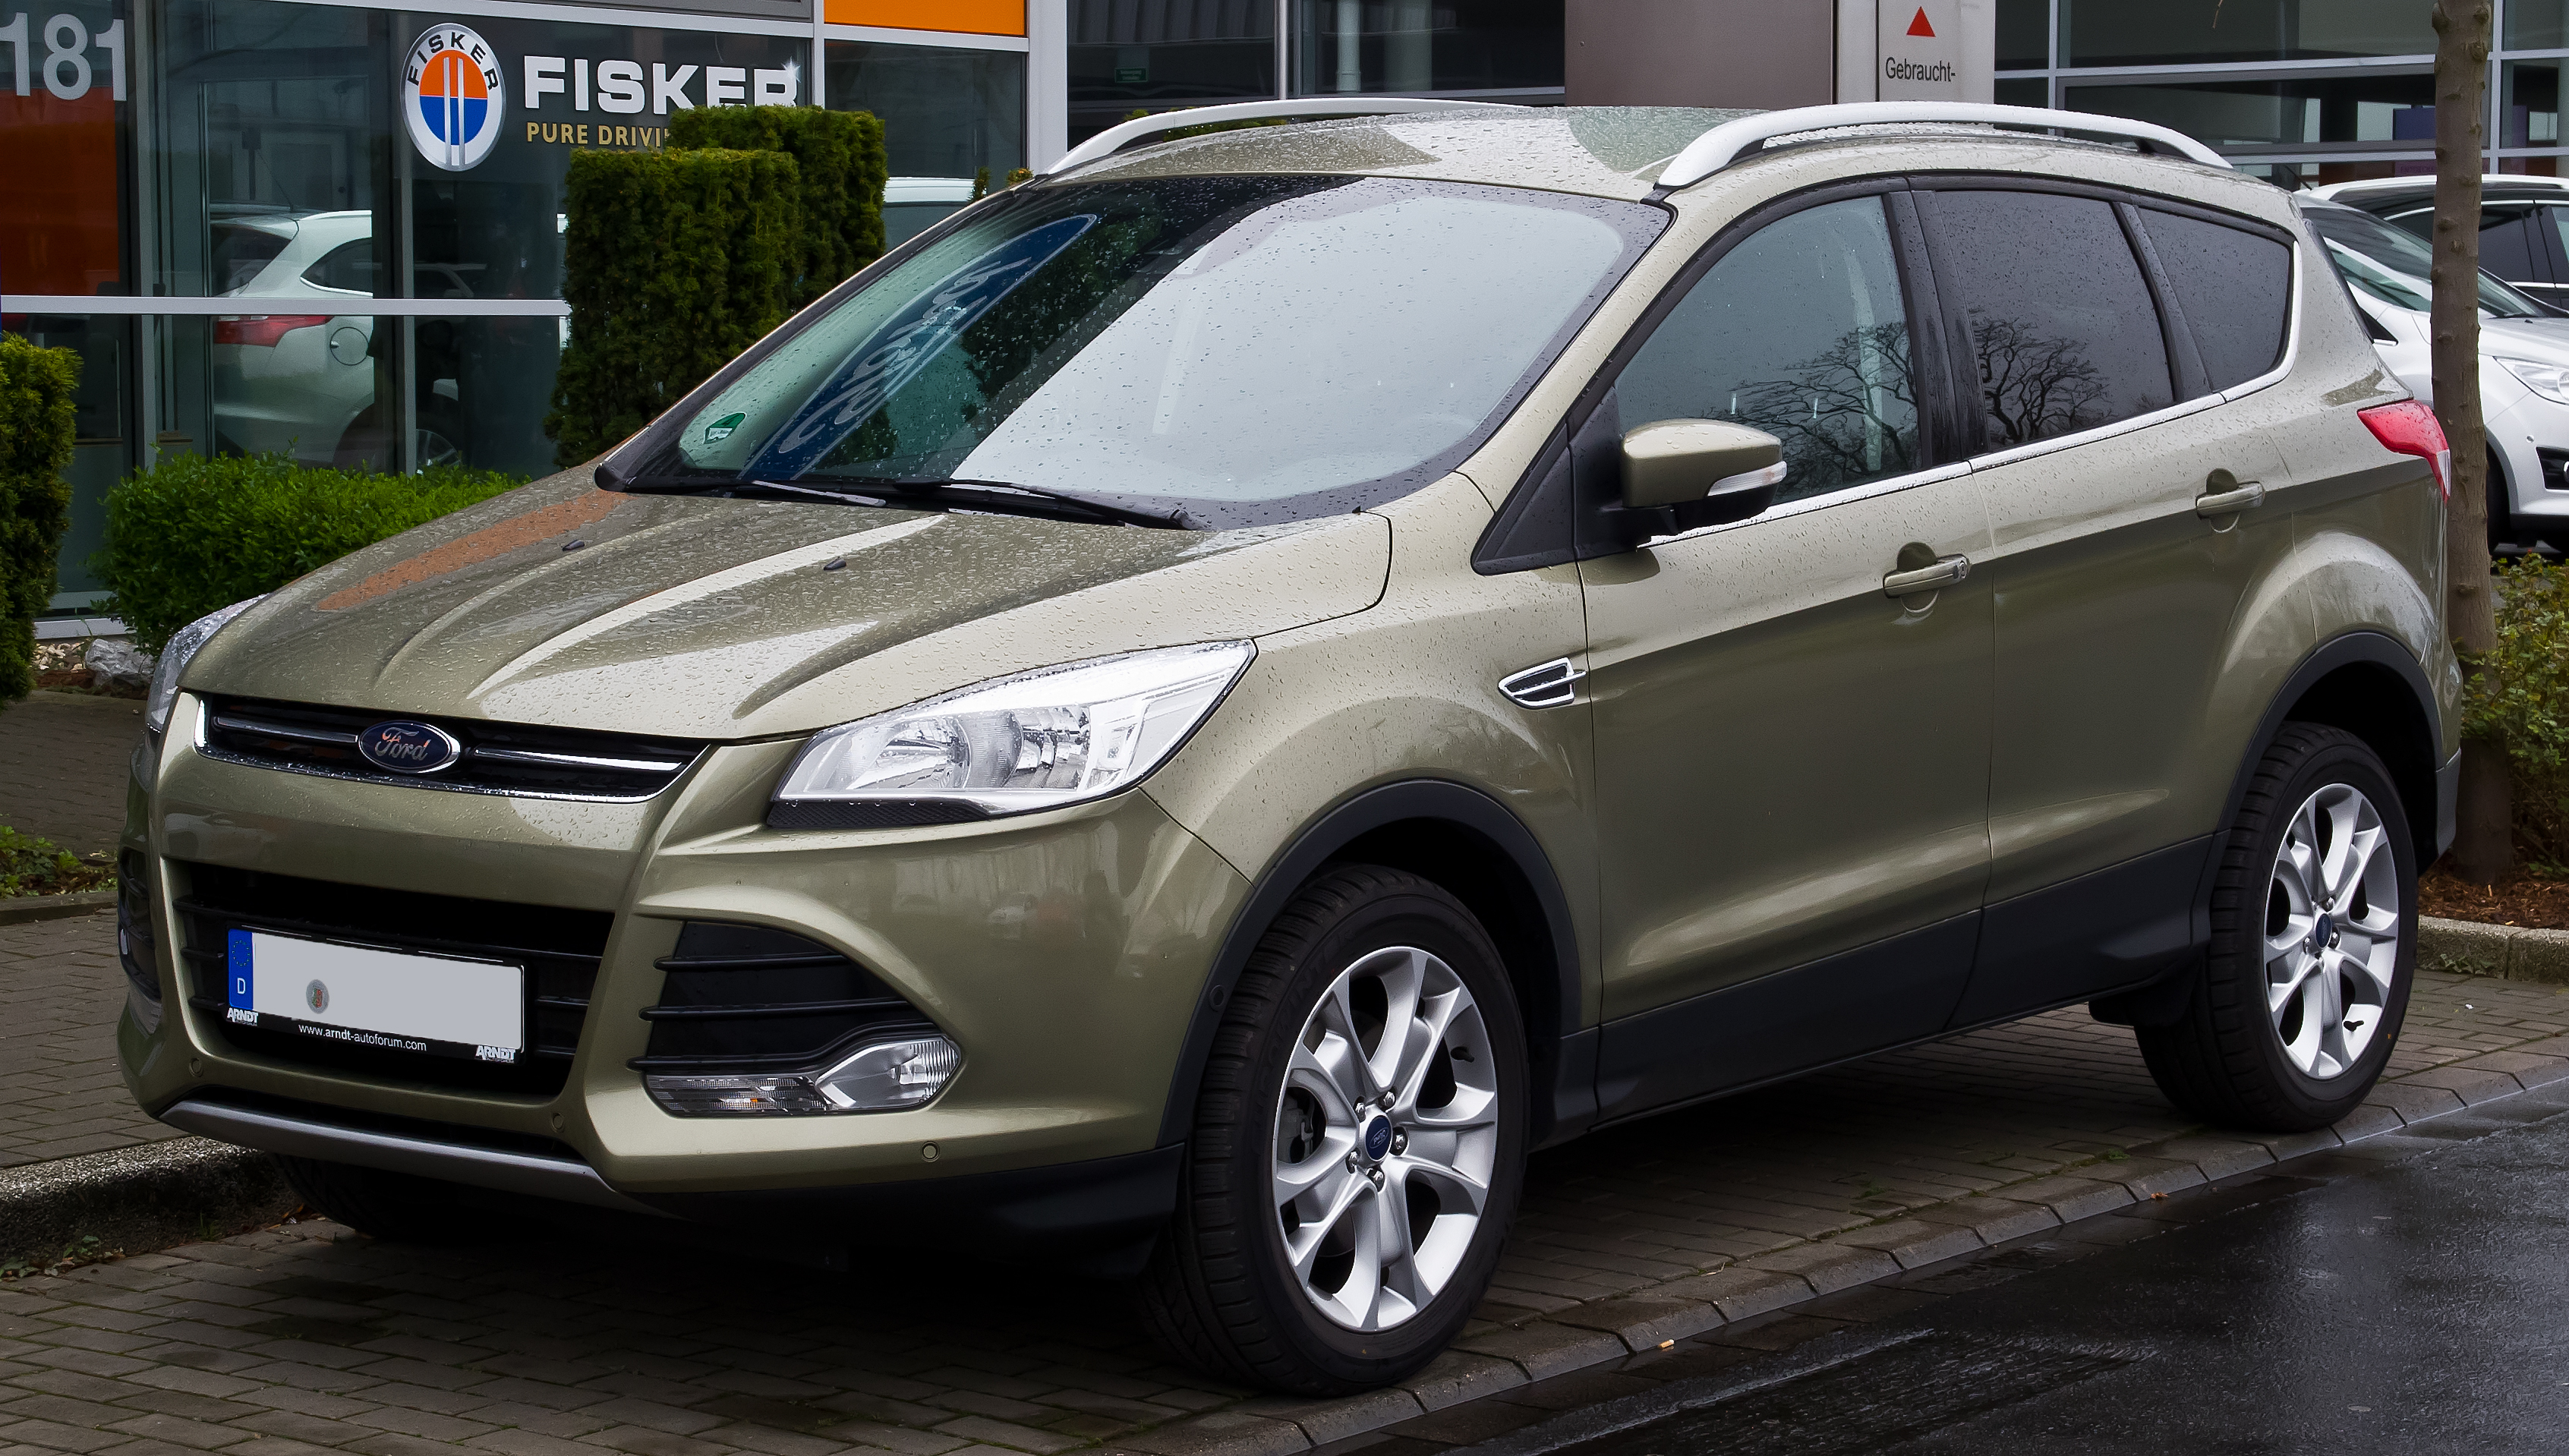 datei ford kuga titanium ii frontansicht 22 m rz 2014 d wikipedia. Black Bedroom Furniture Sets. Home Design Ideas